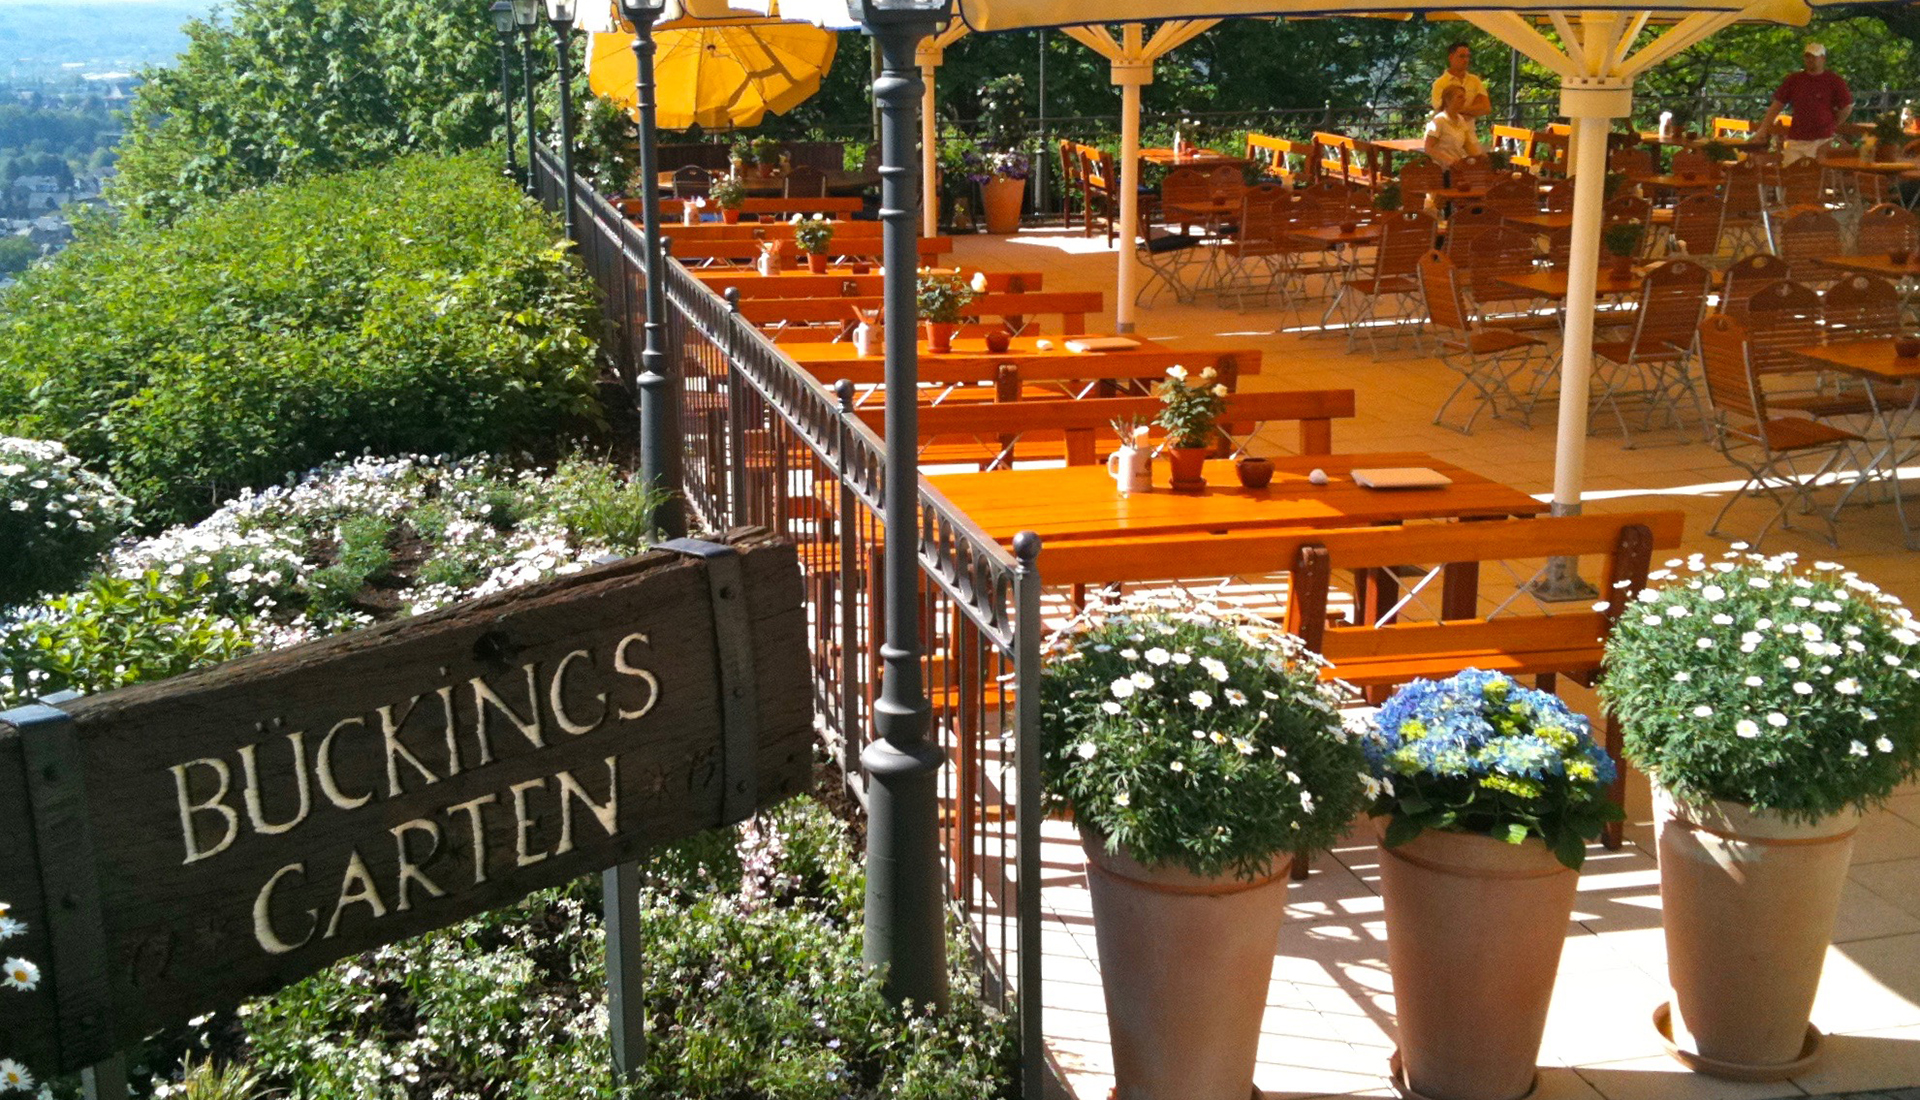 Der Bückingsgarten in Marburg